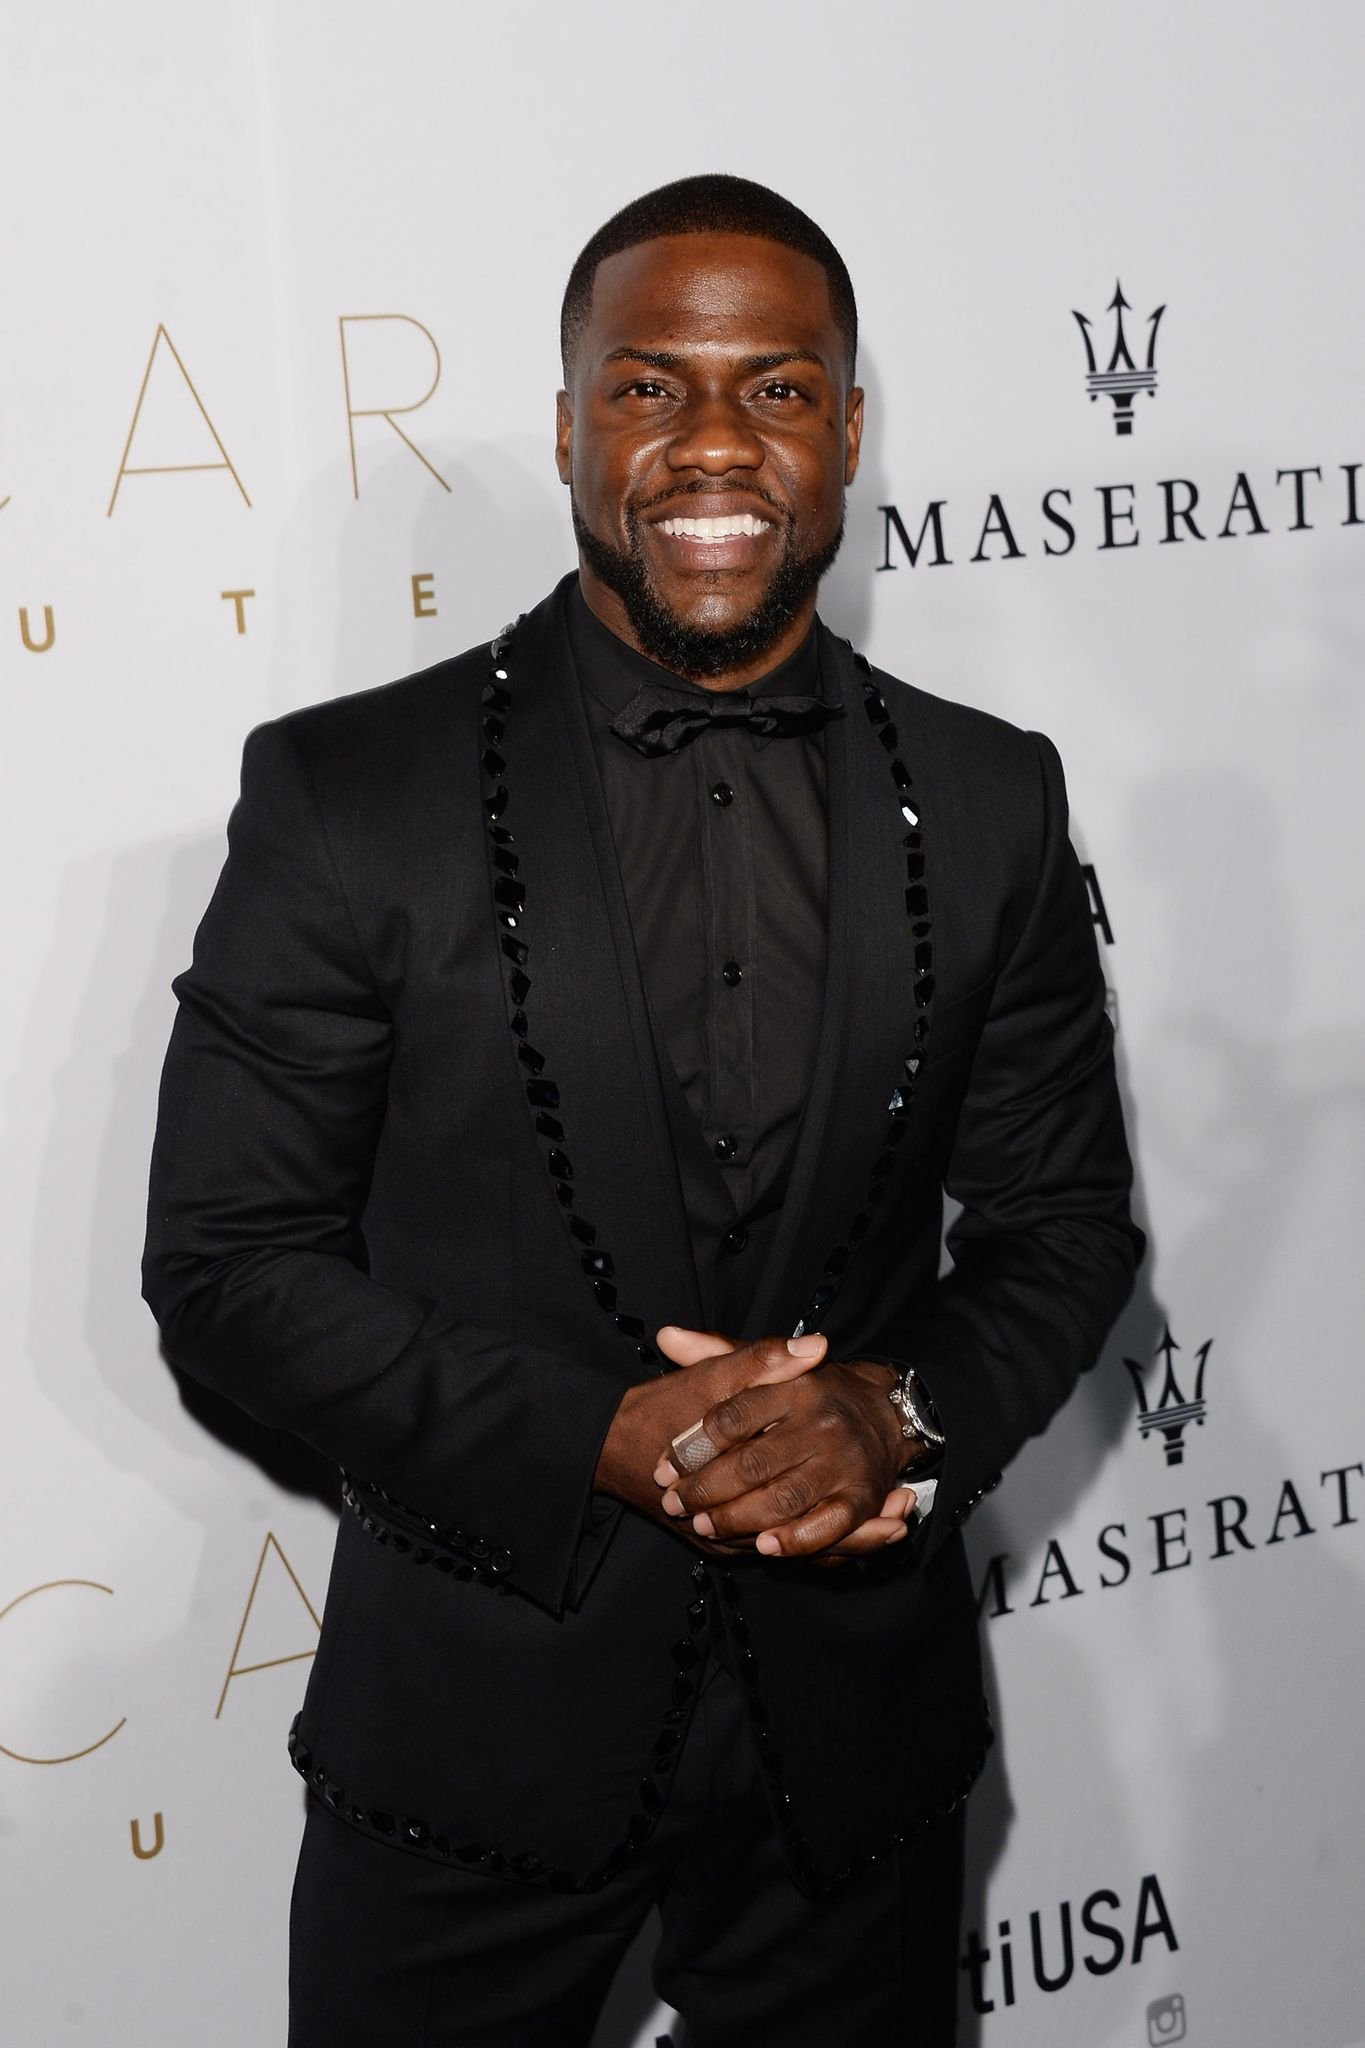 Kevin Hart at the Oscar Salute after party in Hollywood on February 28, 2016. | Photo: Getty Images